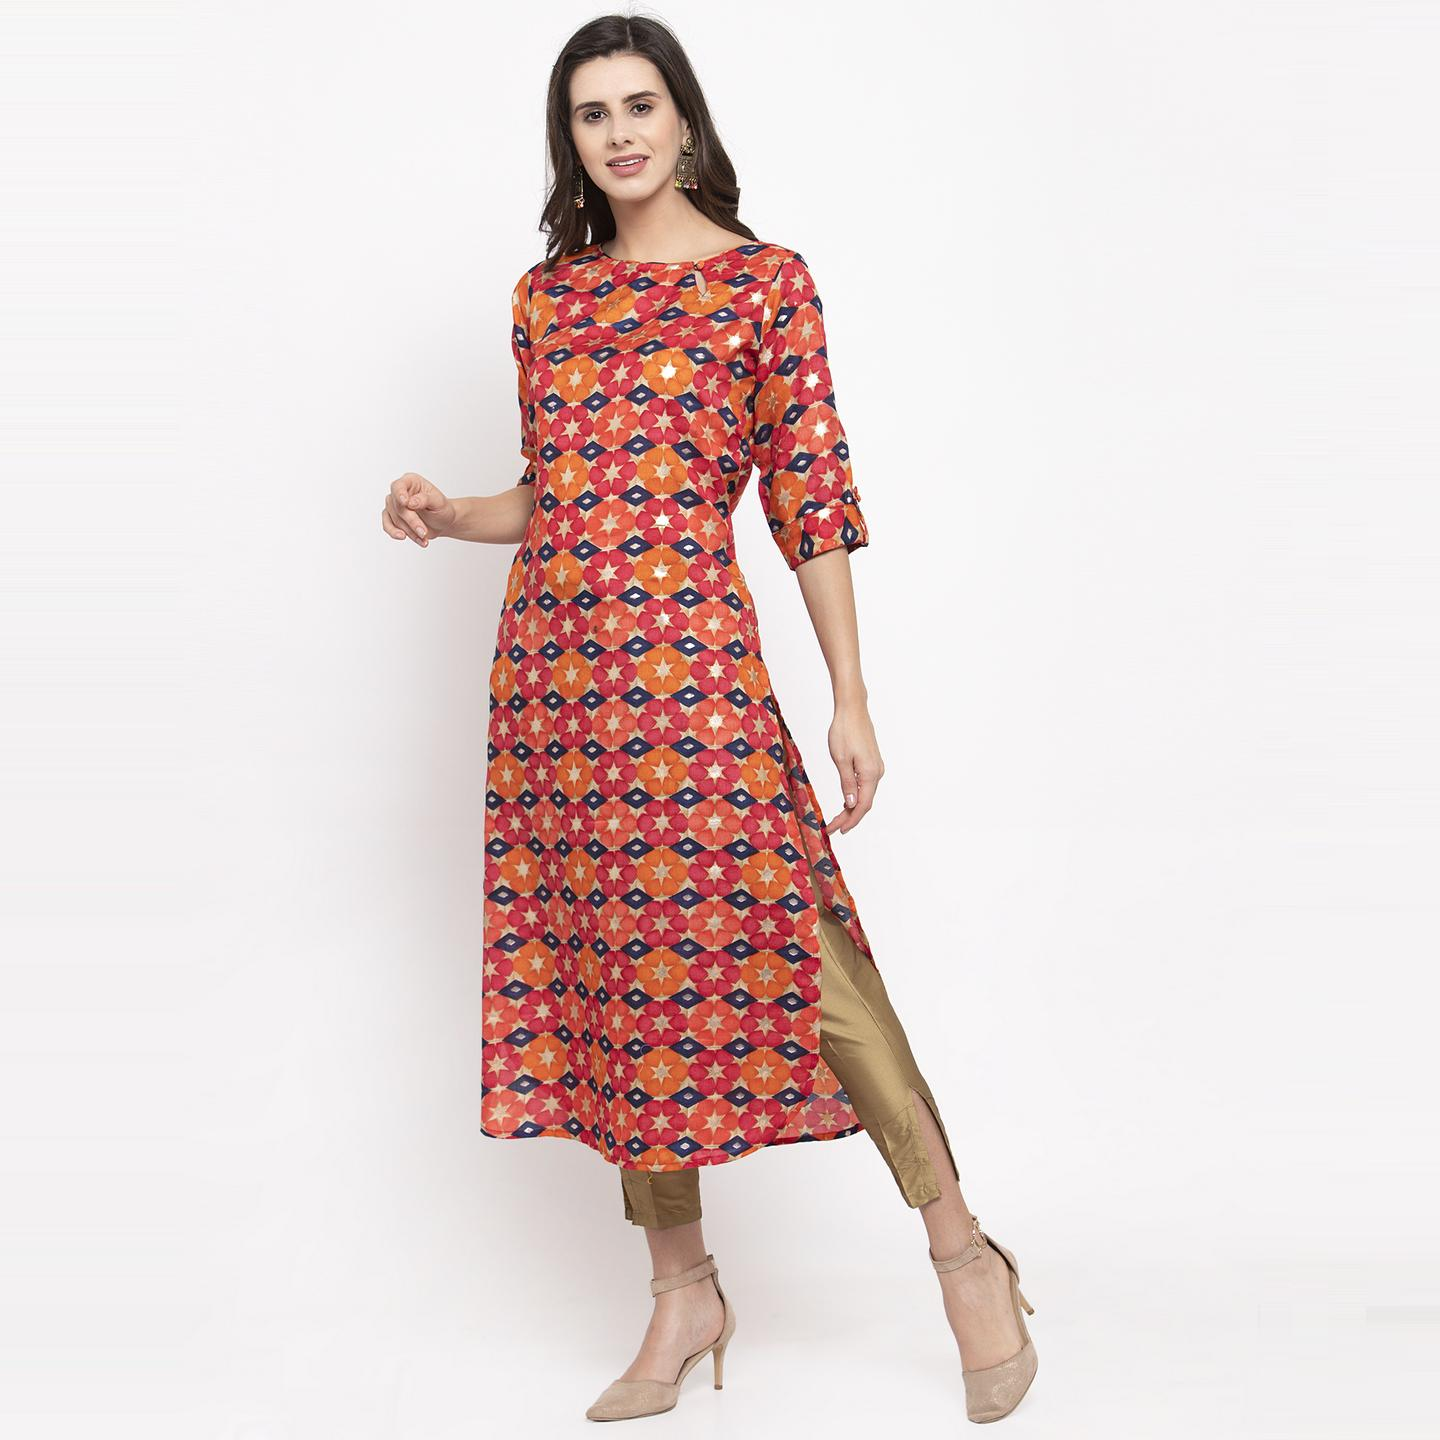 Aujjessa - Pink-Orange Colored Casual Wear Floral Printed Art Silk Kurti